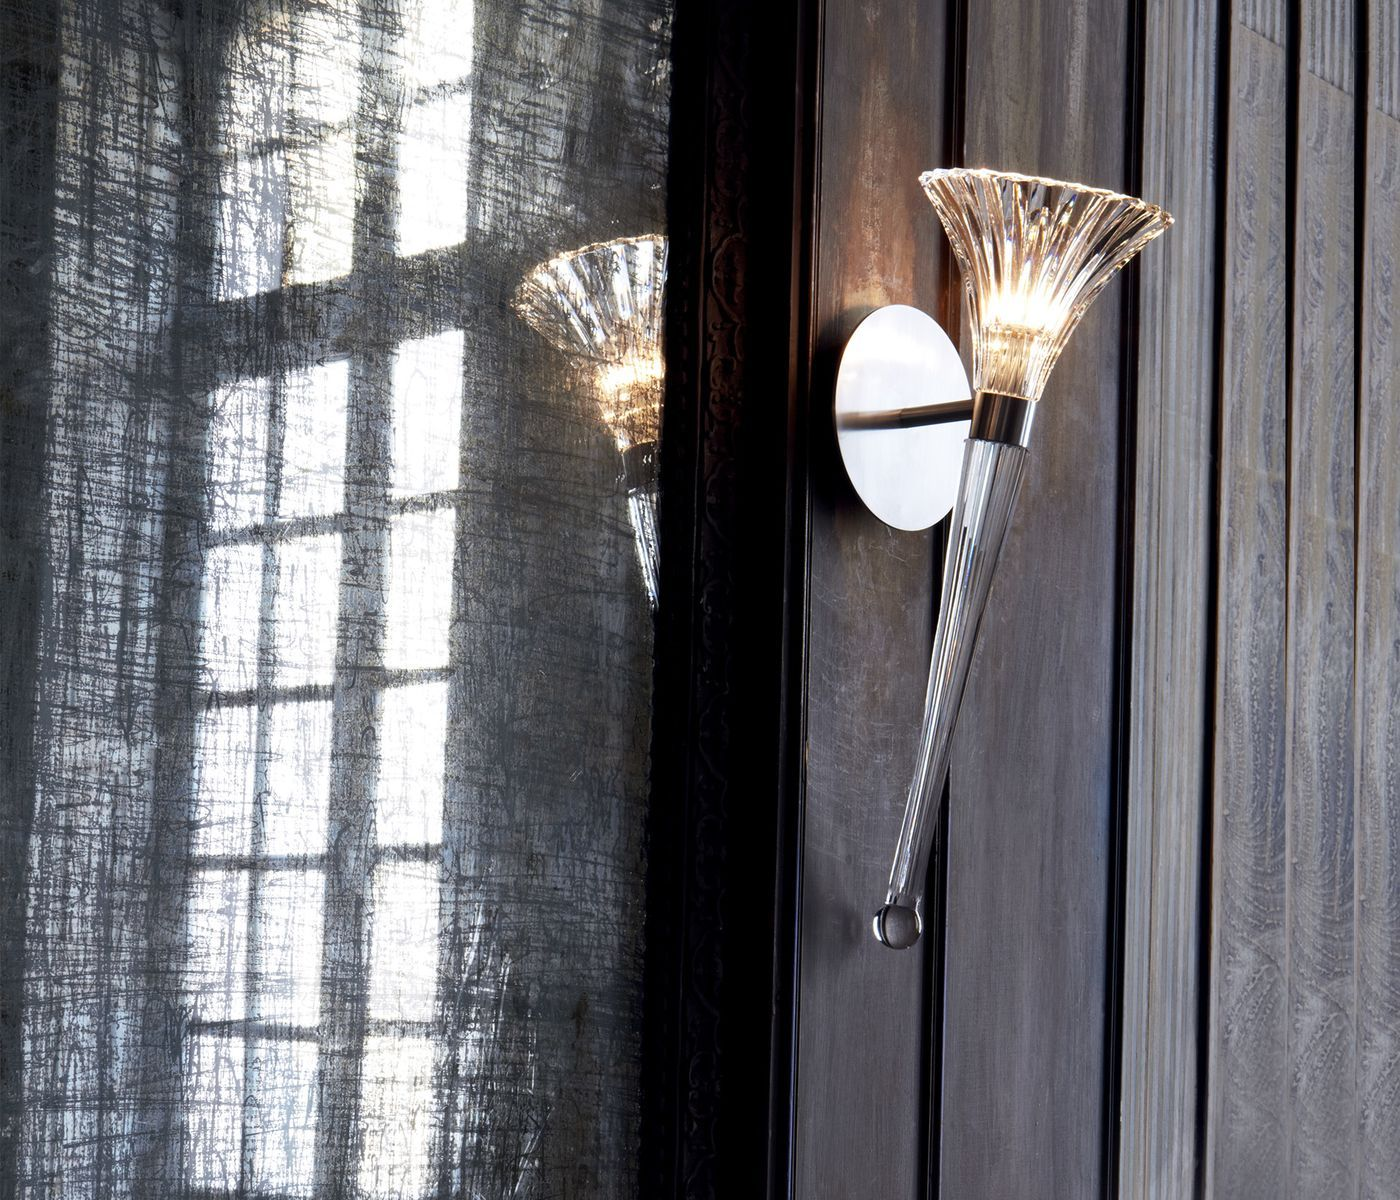 Mille Nuits Wall Sconce Torchere Sconces Wall Sconces Wall